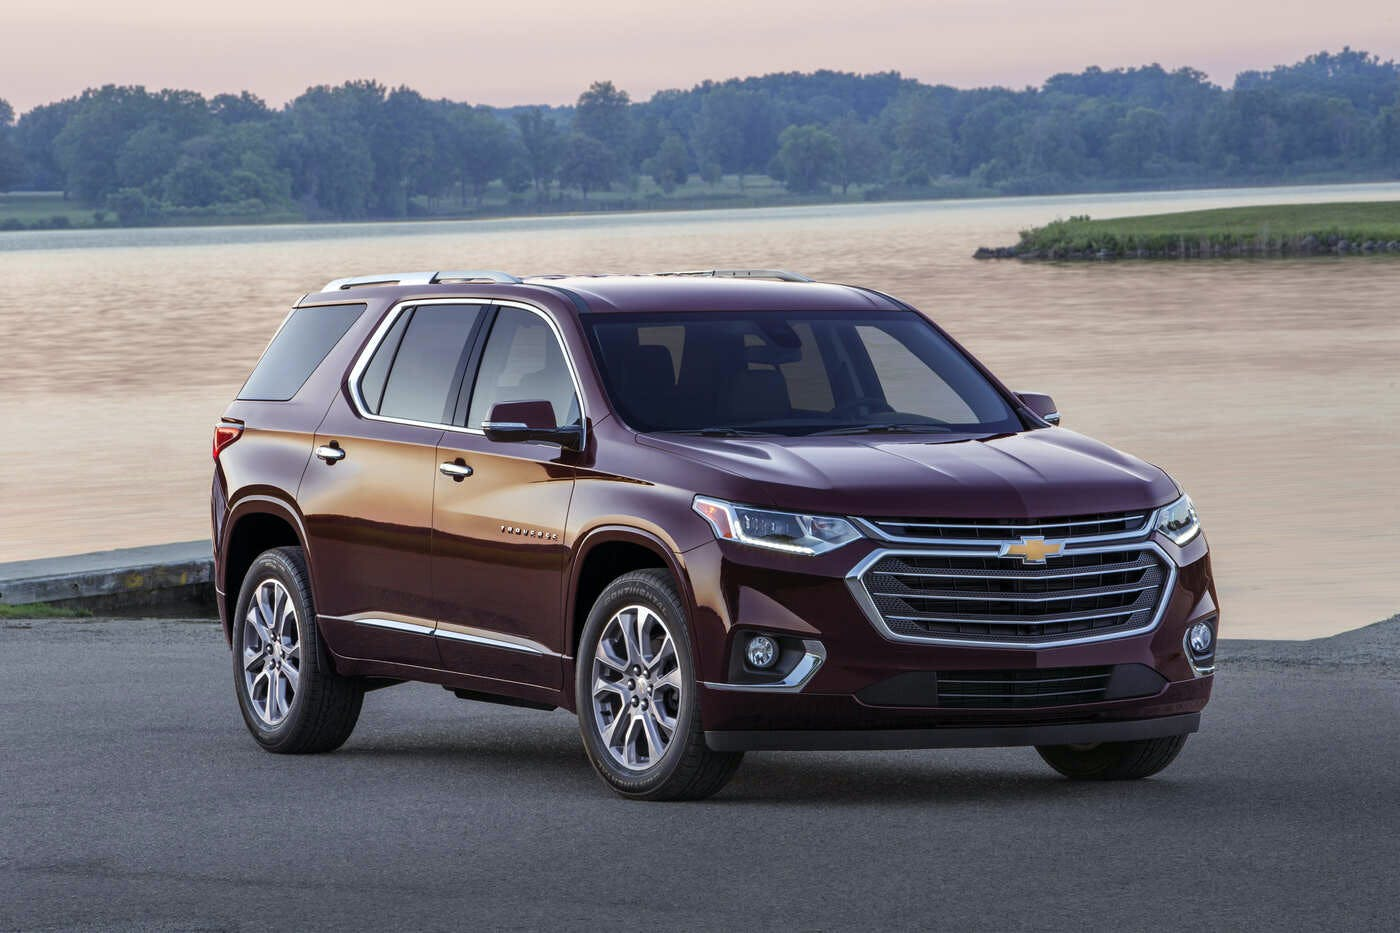 2020 Chevy Traverse Redesign Price And Release Date >> 2020 Chevrolet Traverse Comparisons Reviews Pictures